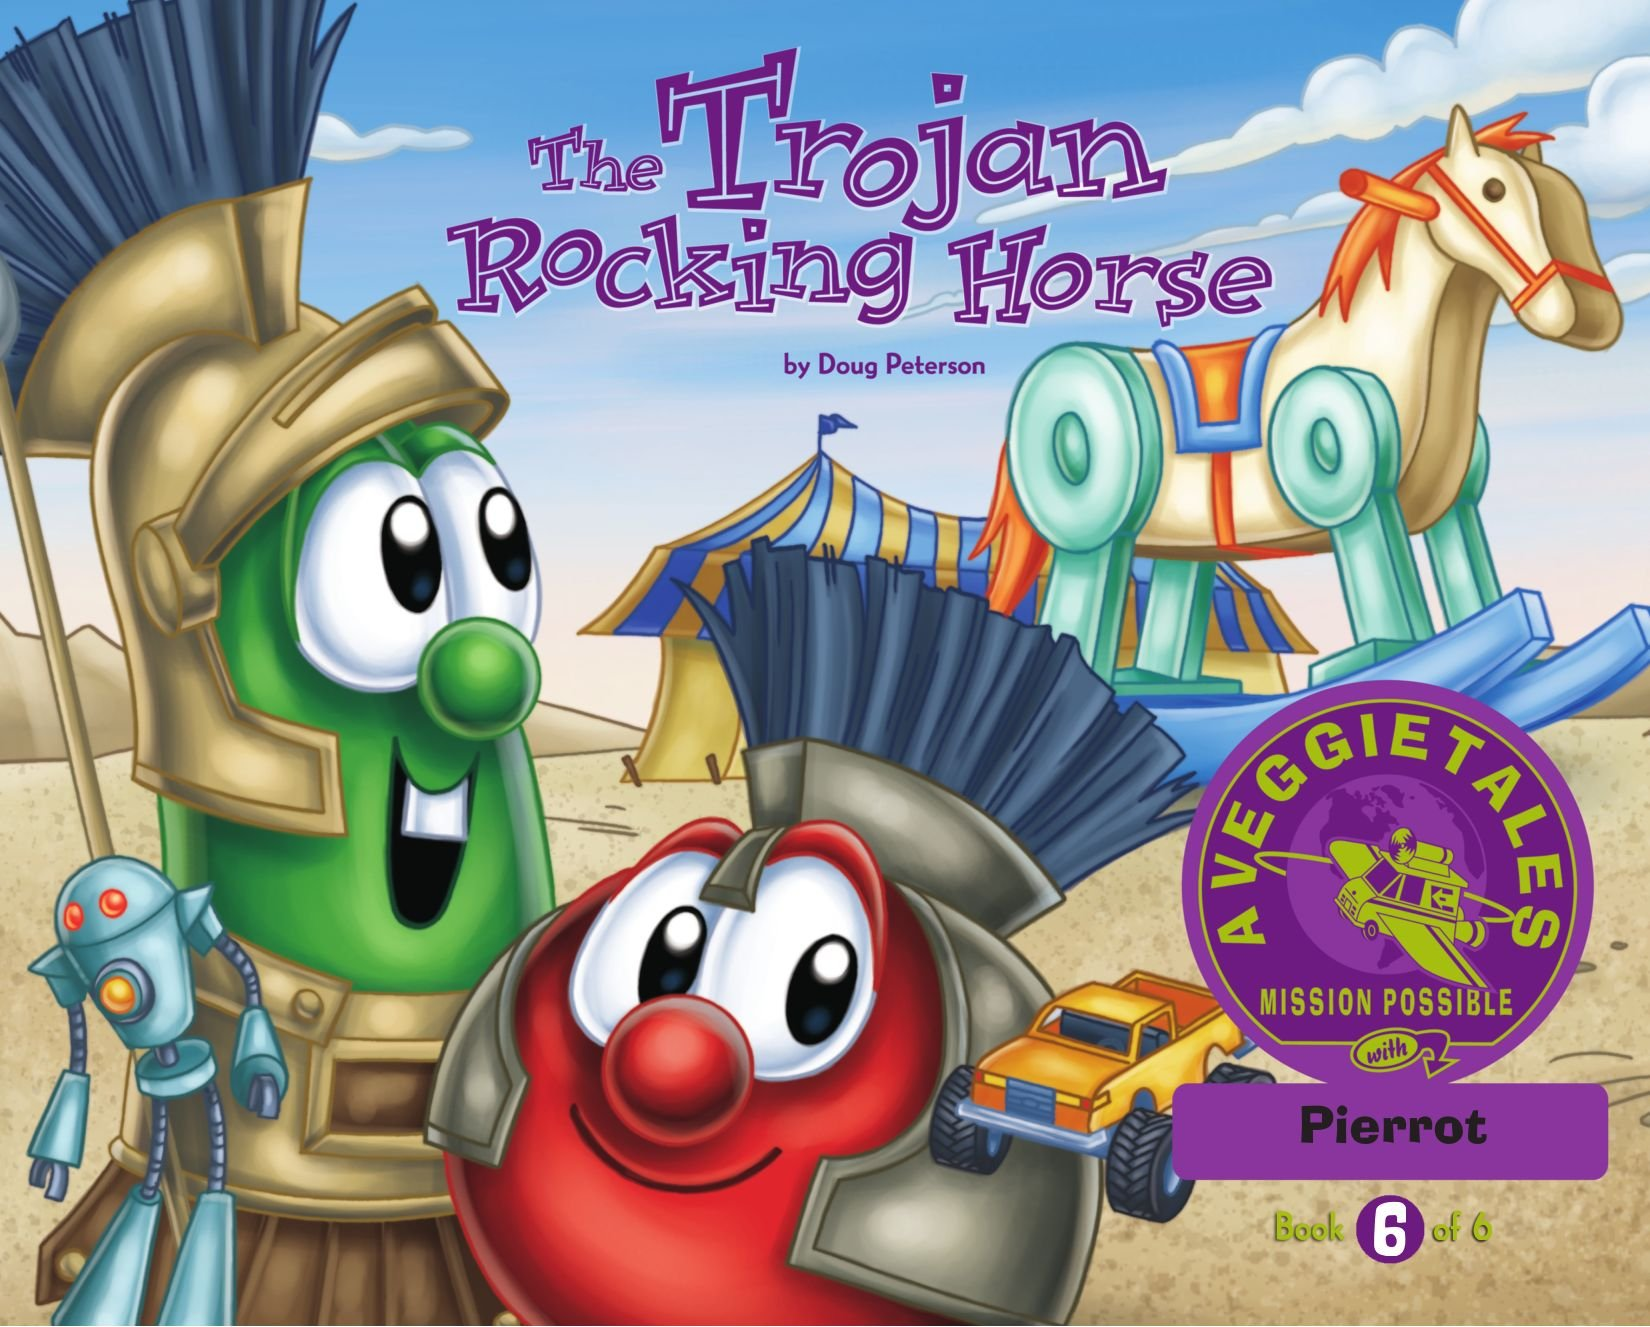 Download The Trojan Rocking Horse - VeggieTales Mission Possible Adventure Series #6: Personalized for Pierrot (Boy) PDF